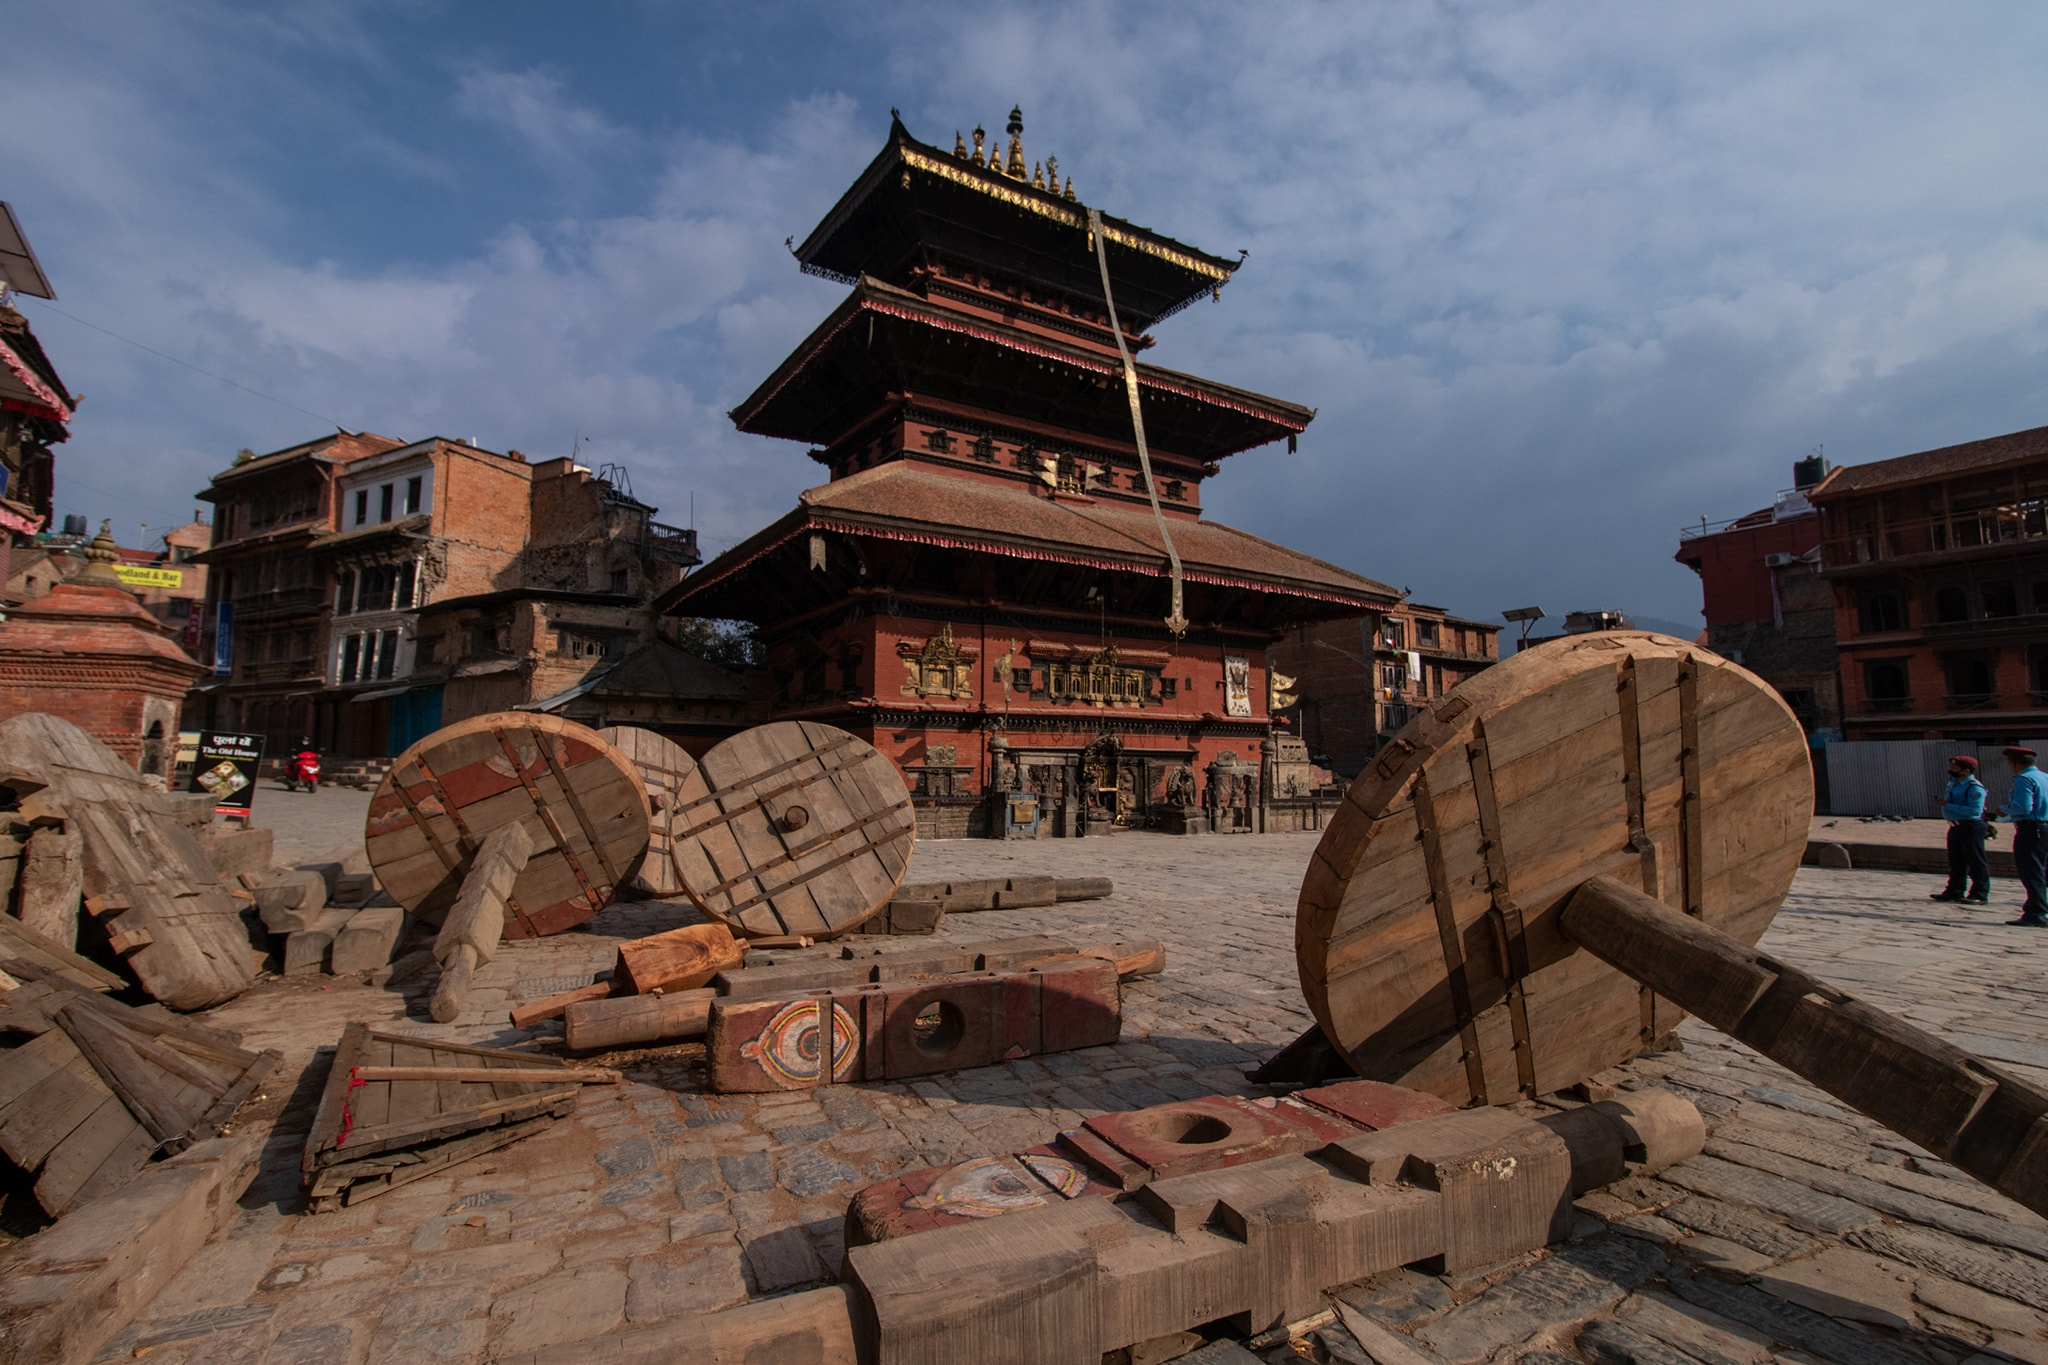 During Corona lockdown at Bhaktapur image